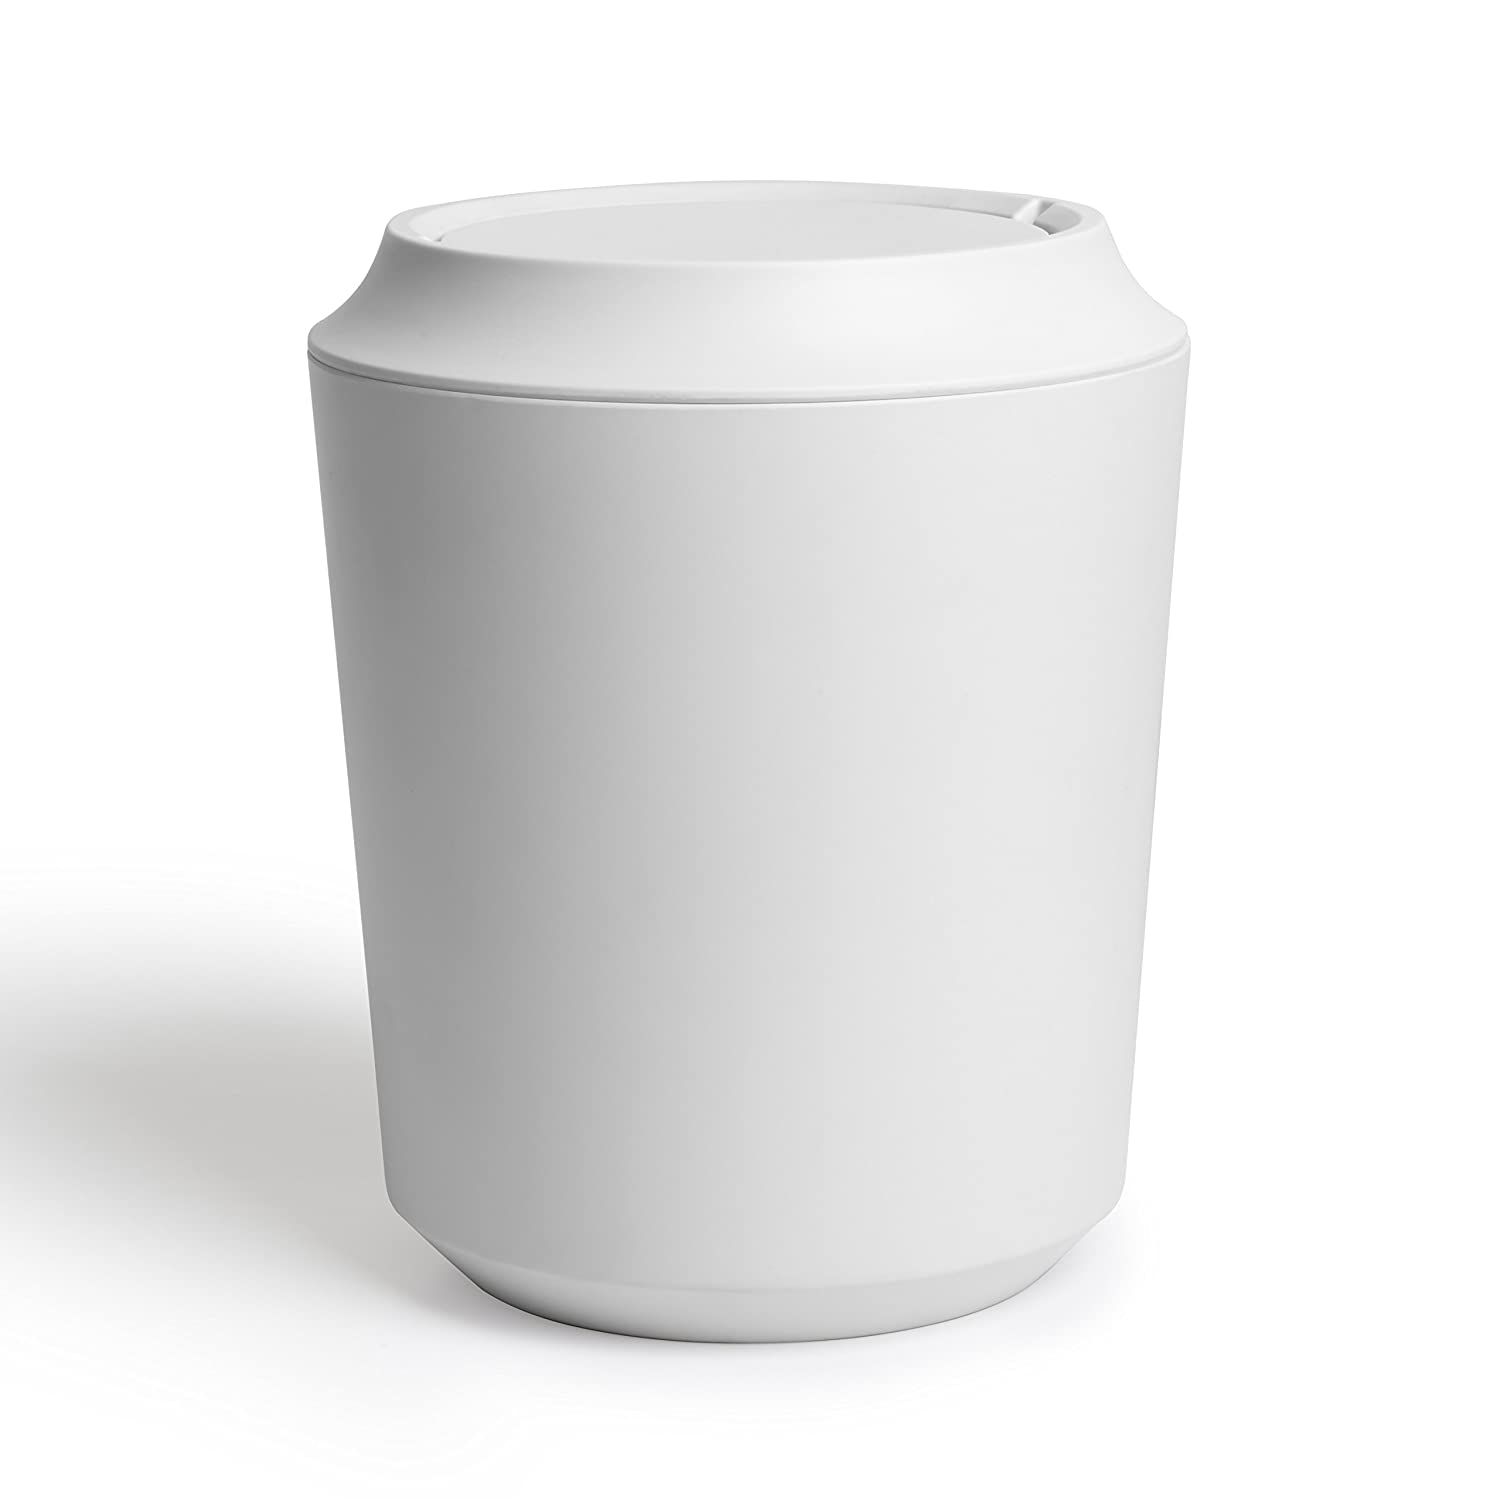 Bathroom Trash Cans With Covers